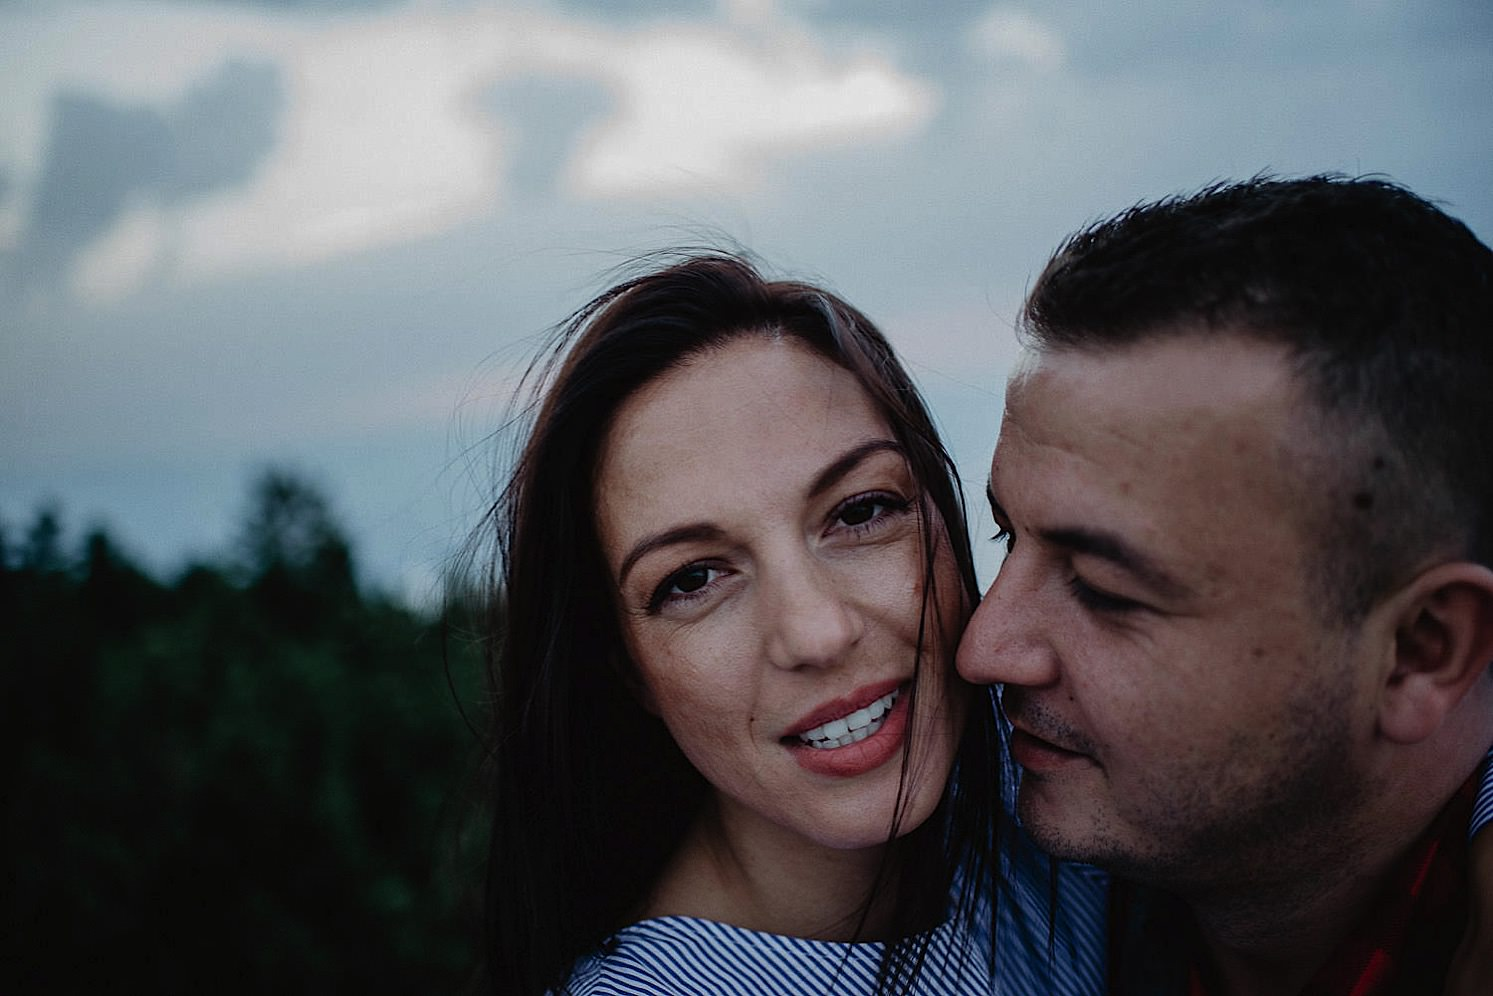 couple-photographer-rijeka